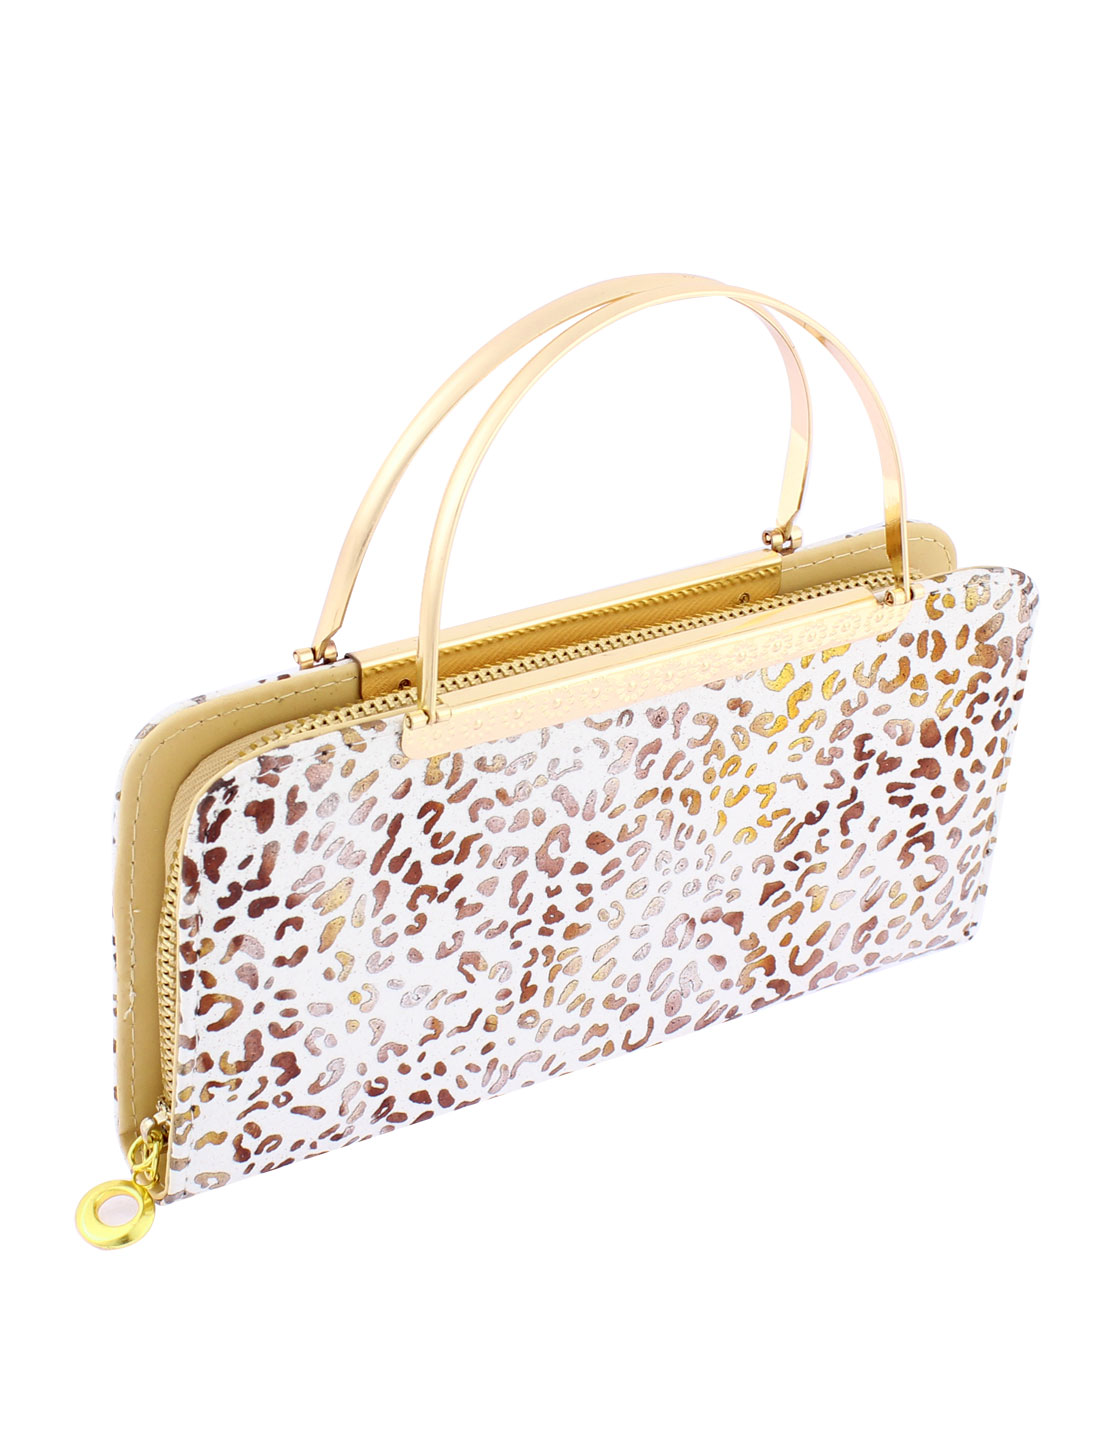 Lady Faux Leather Zip Up Leopard Prints Handbag Purse Evening Clutch Bag White